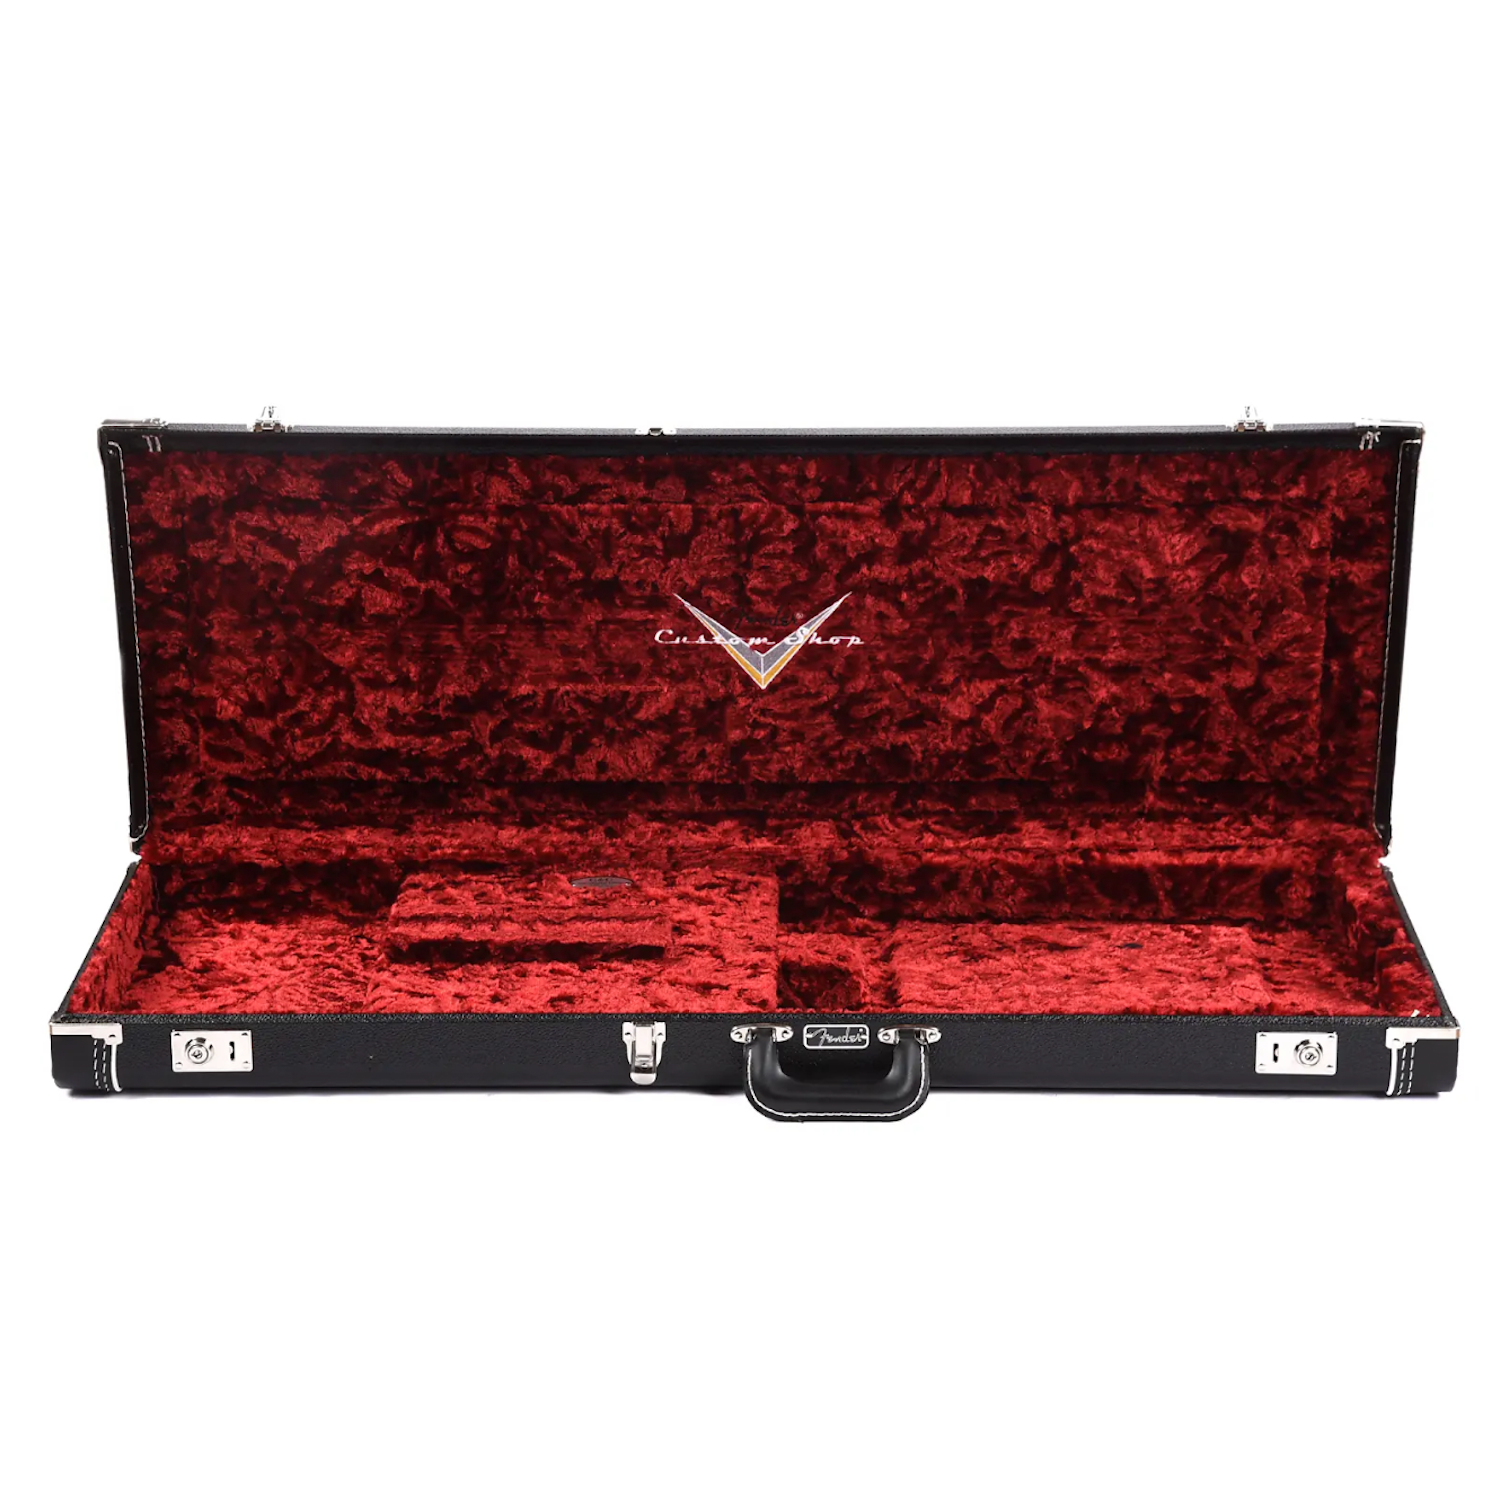 Fender Custom Shop Guitar Case Crushed Velvet